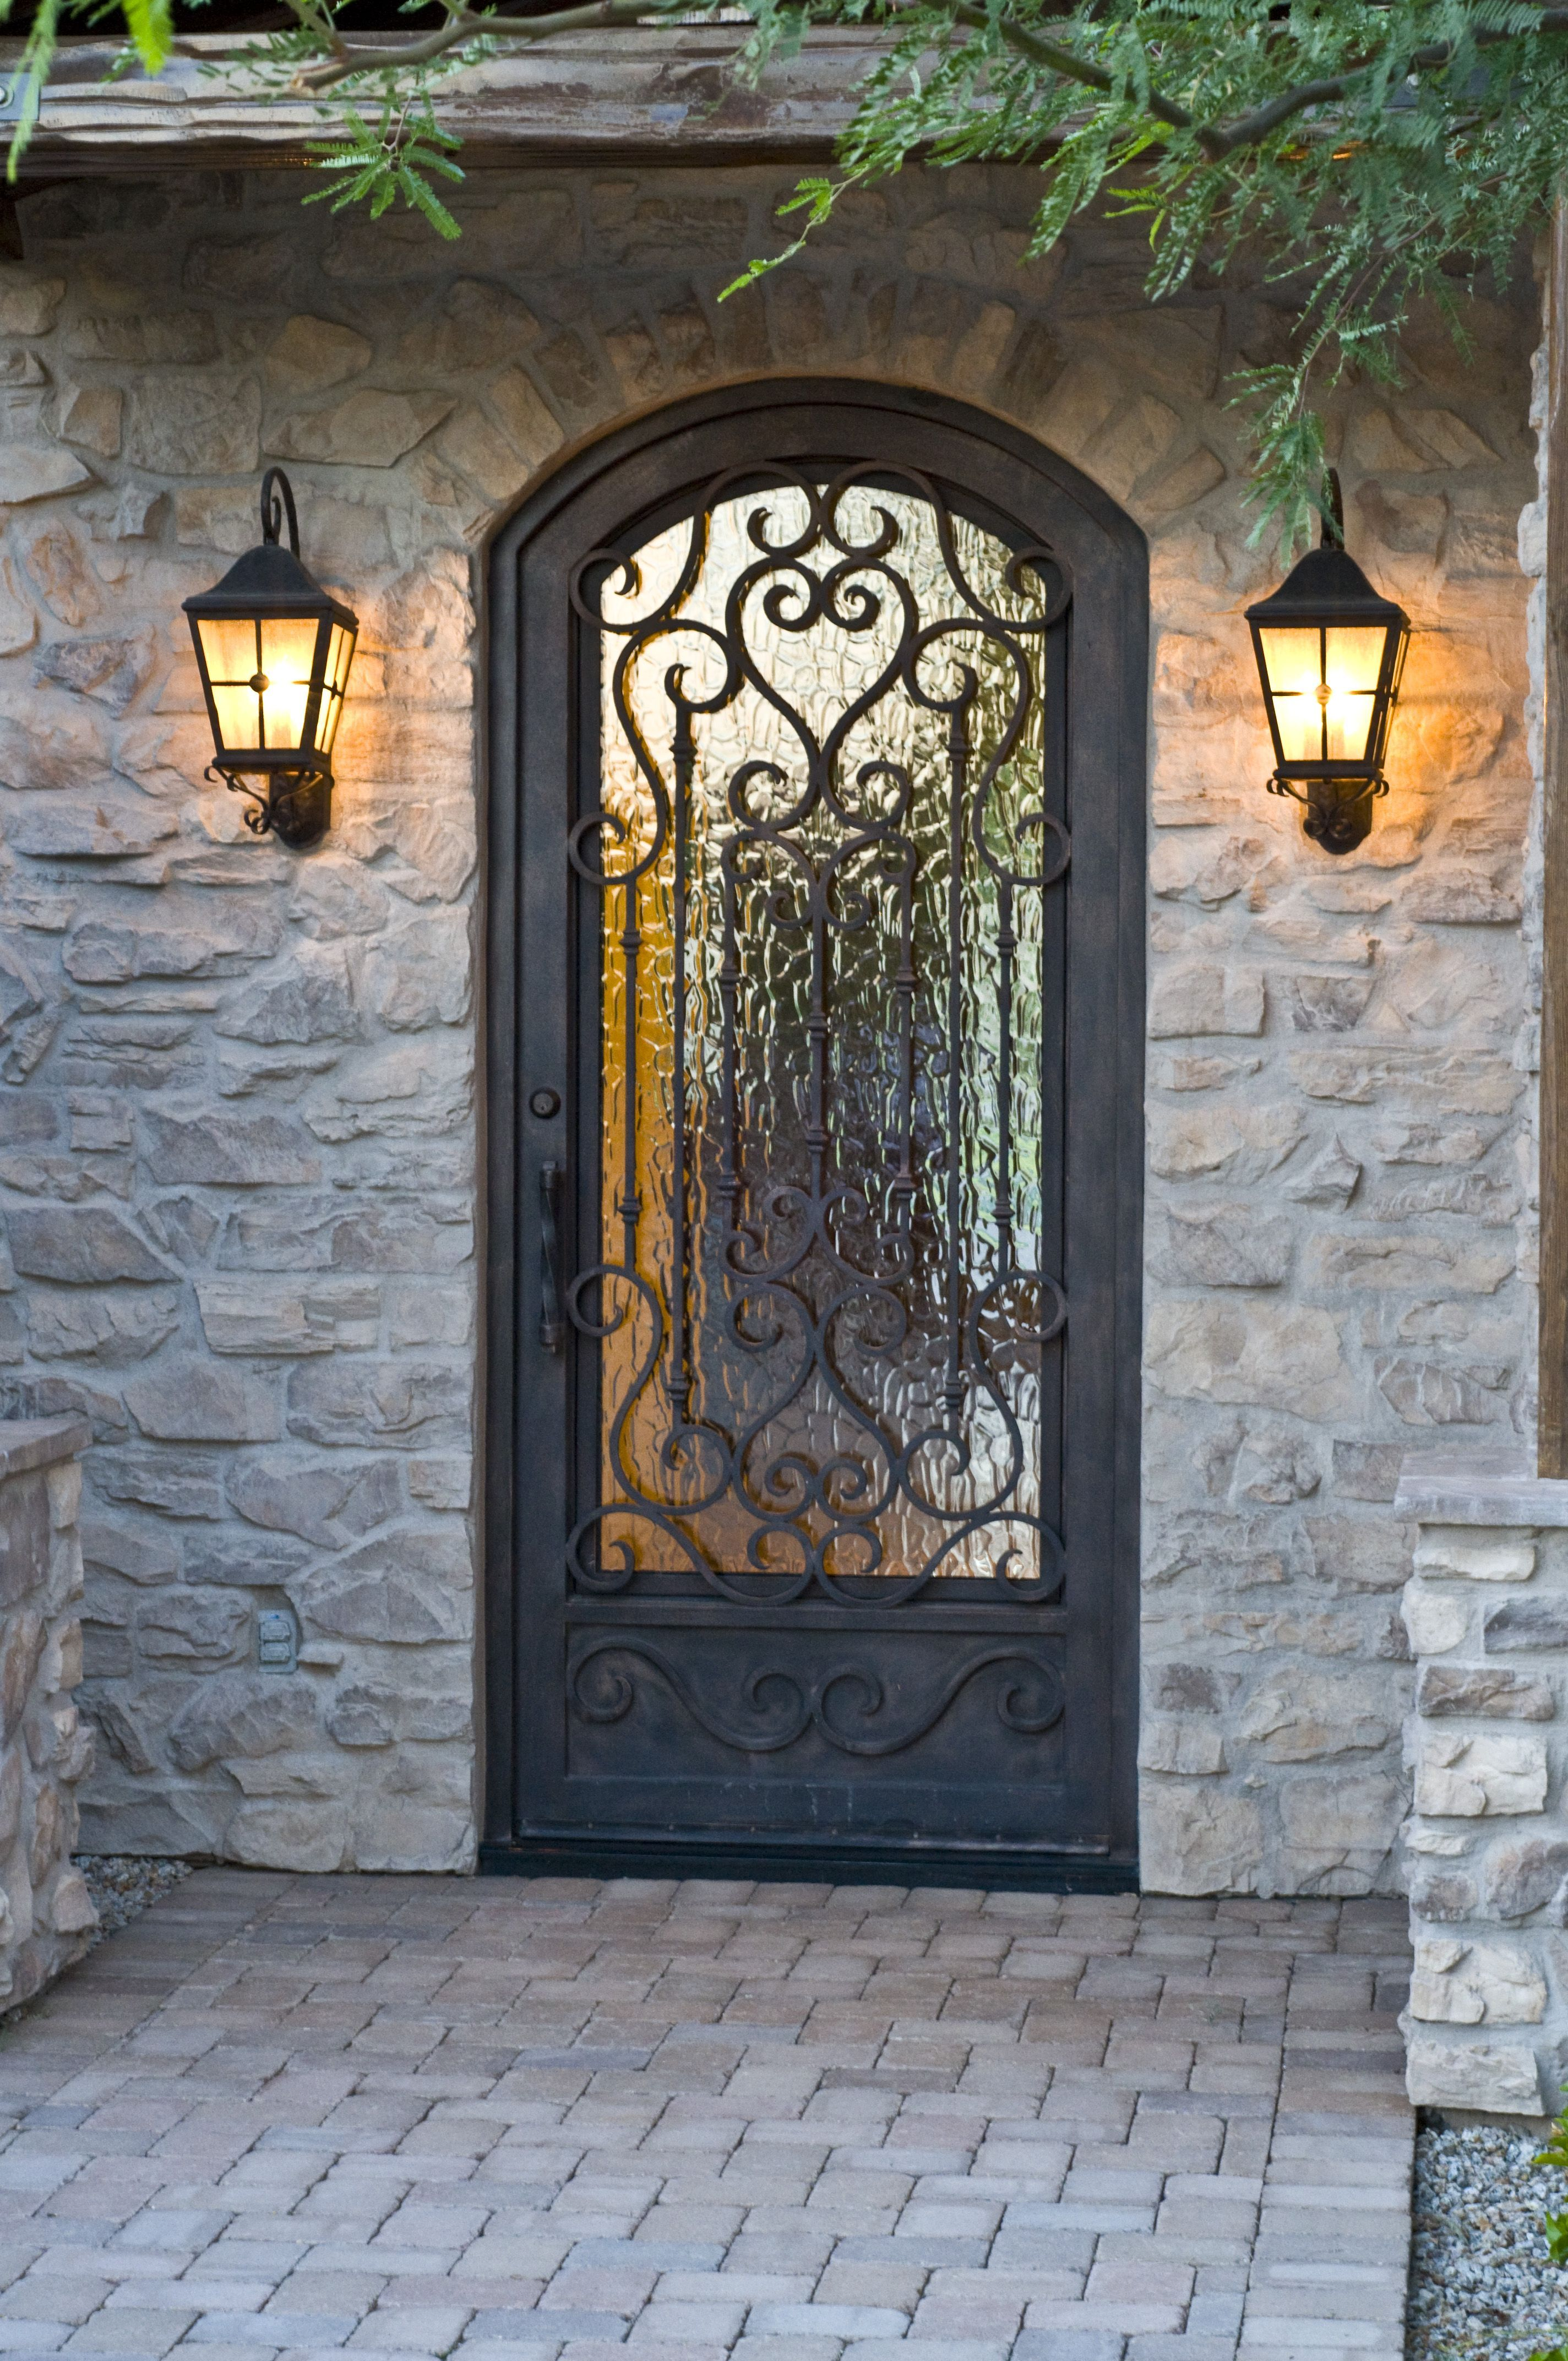 Ada Wall Sconce Requirements Wireless wall sconce